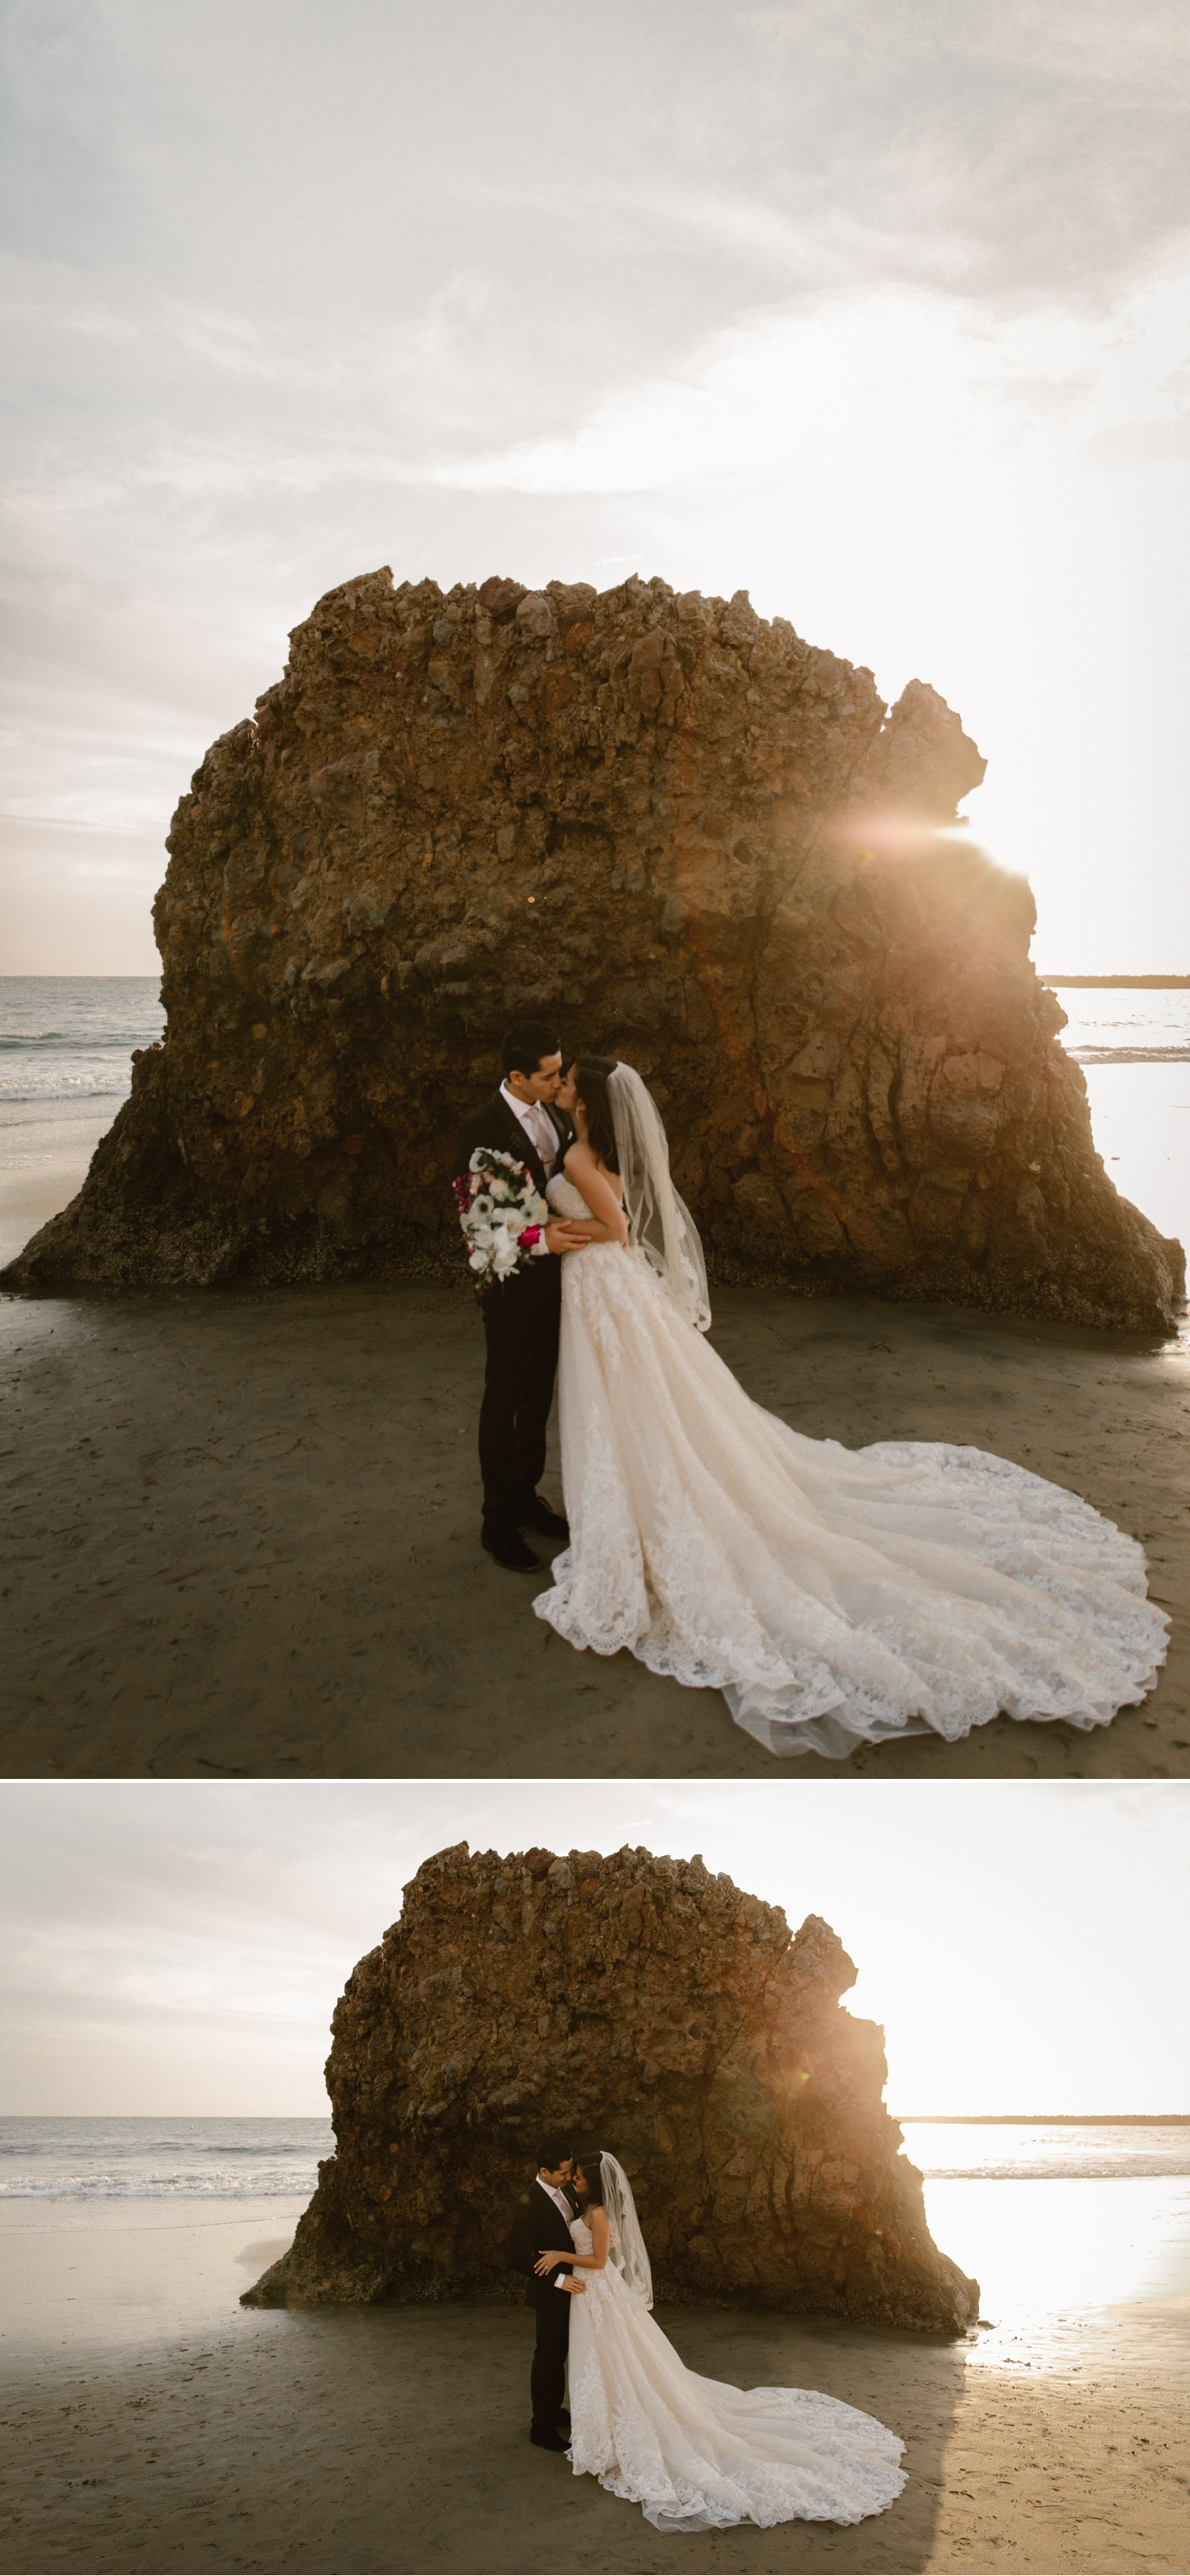 Sunset wedding portraits on beach at Inspiration Point by Paige Nelson